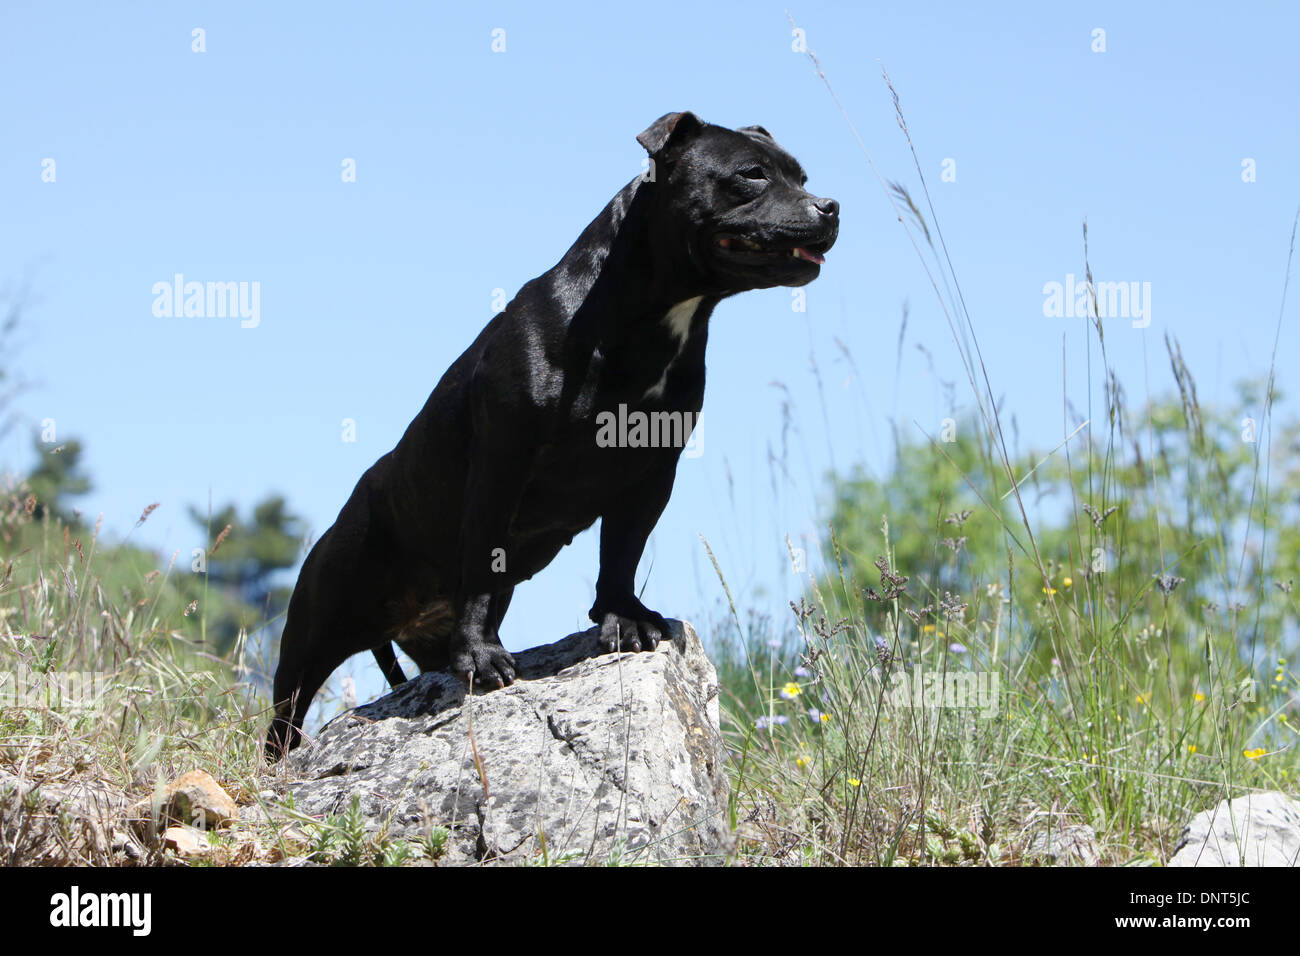 dog Staffordshire Bull Terrier / Staffie  adult standing on a rock - Stock Image